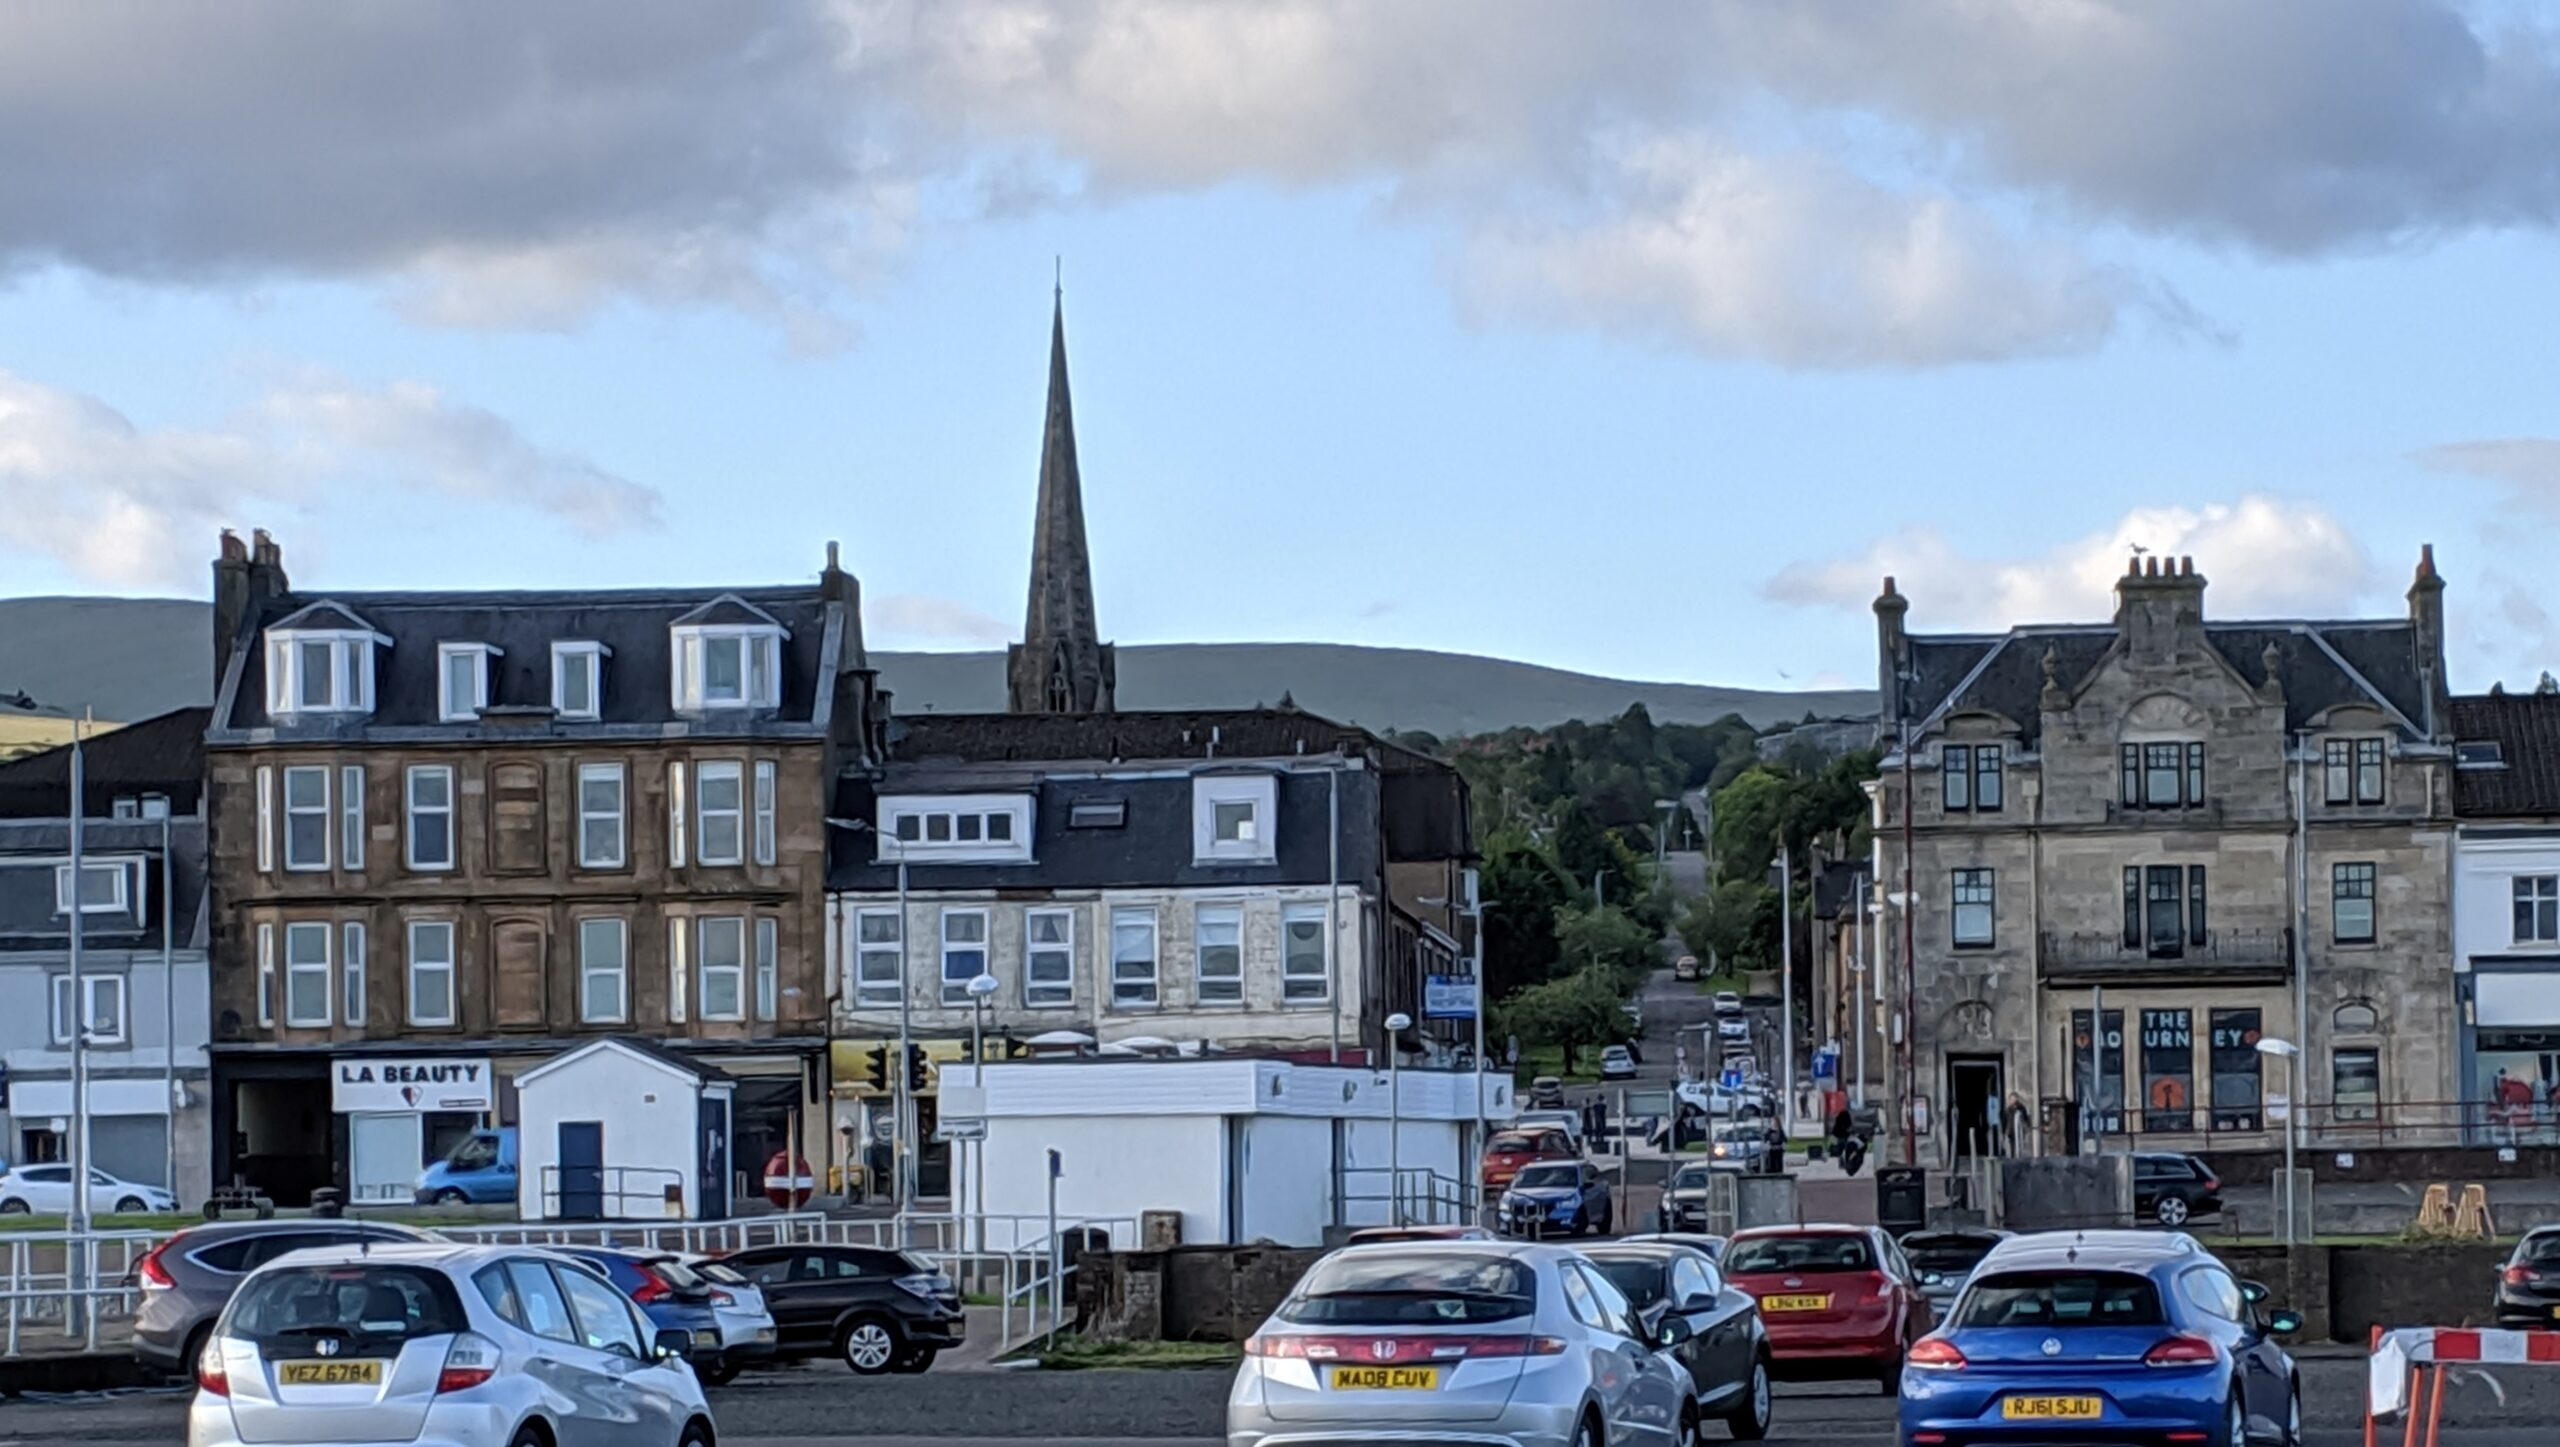 Old three- and four-story buildings face the wharf at Helensburgh, with the green hills of the Scottish highlands rising behind.